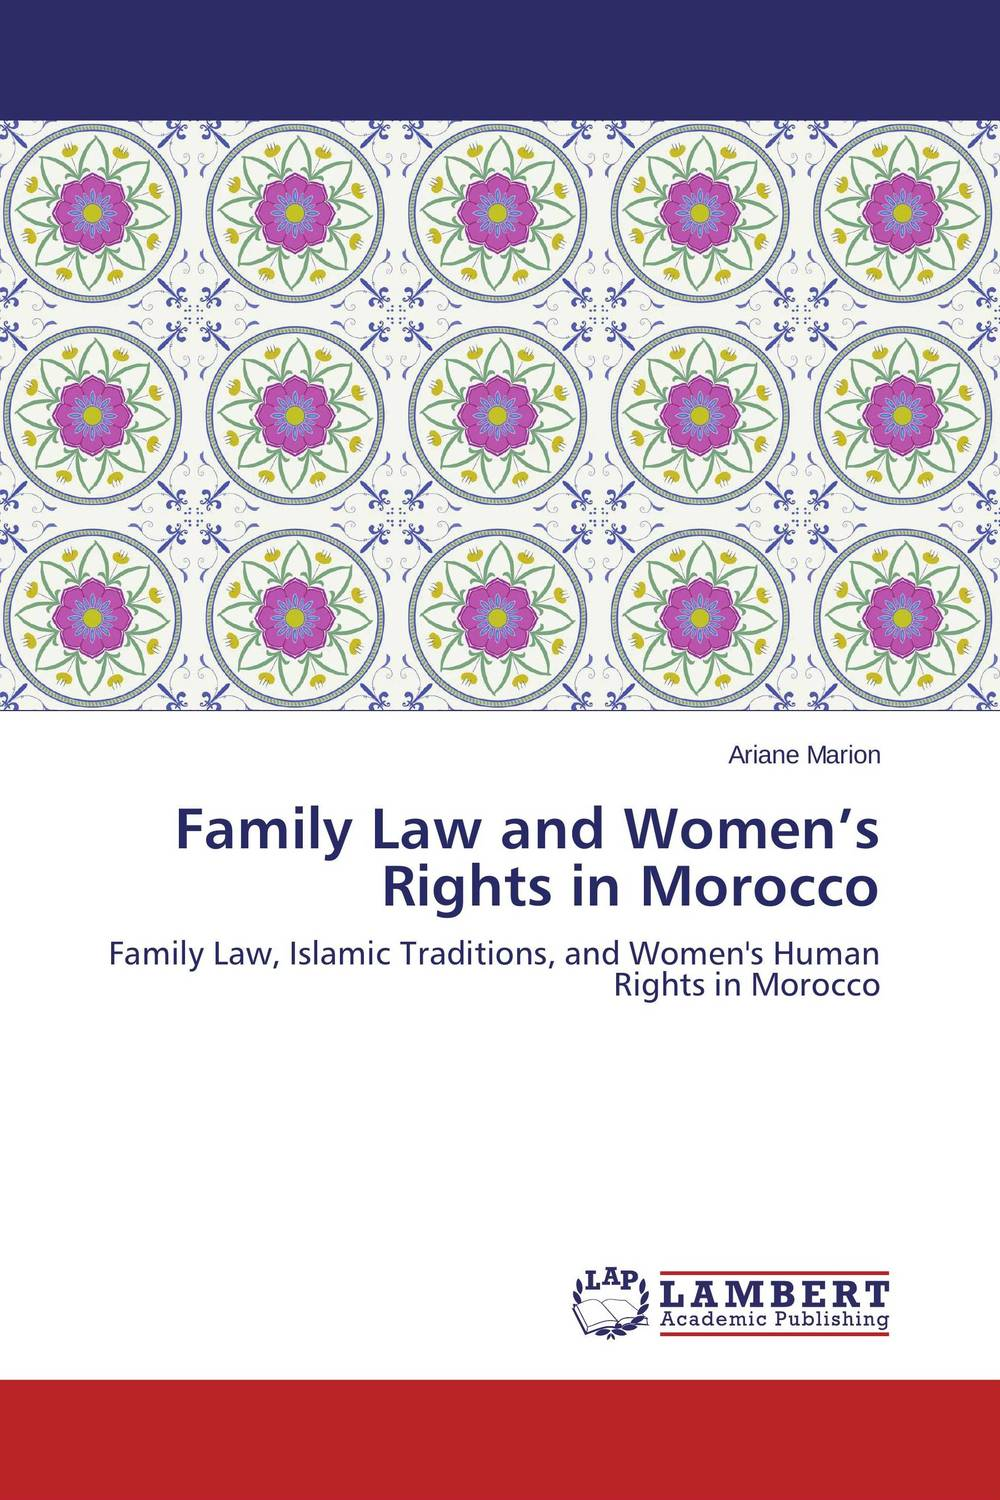 Family Law and Women's Rights in Morocco changing attitude of family towards women in family business